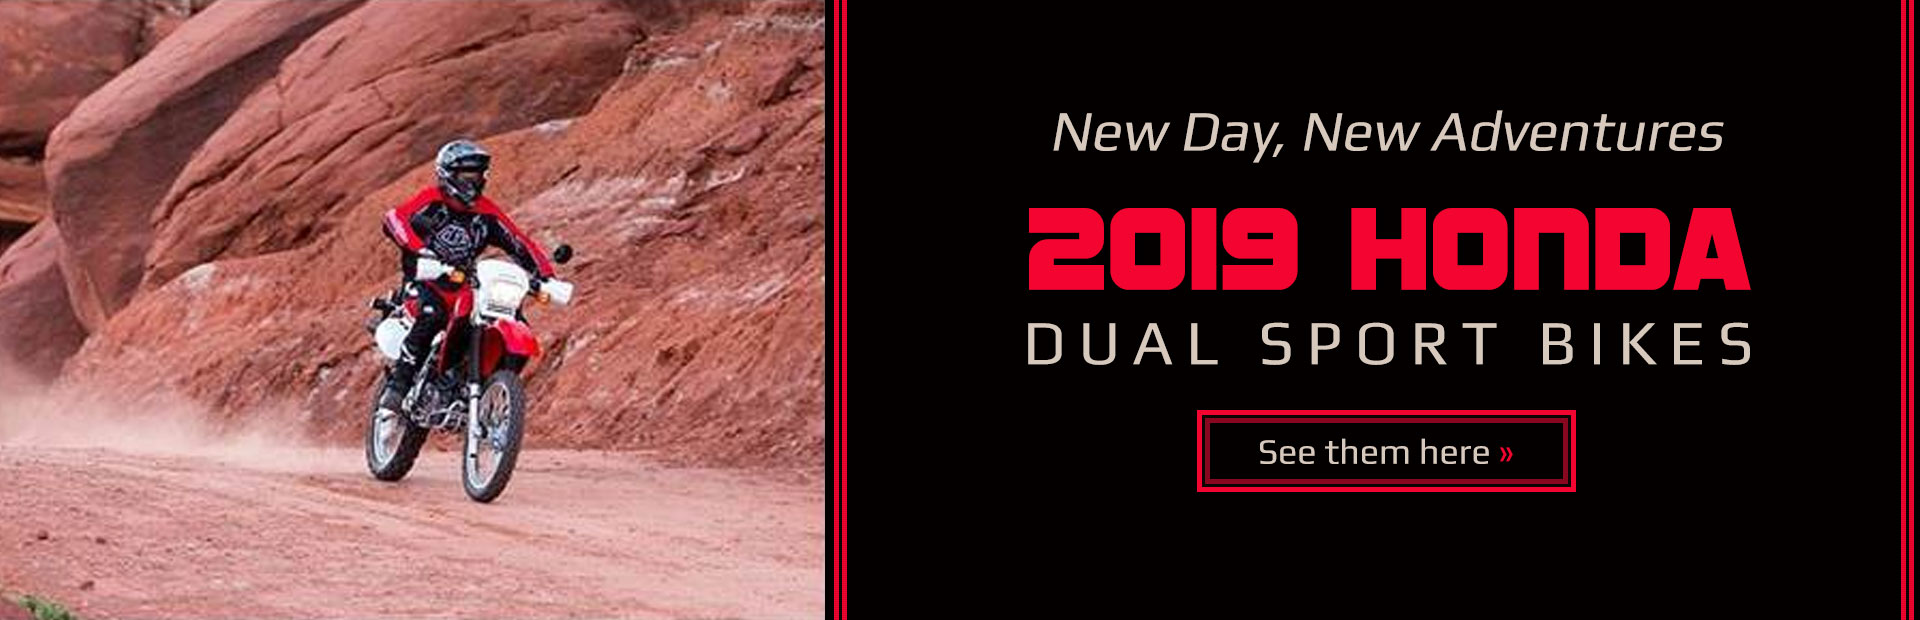 2019 Honda Dual Sport Bikes: Click here to view the models.